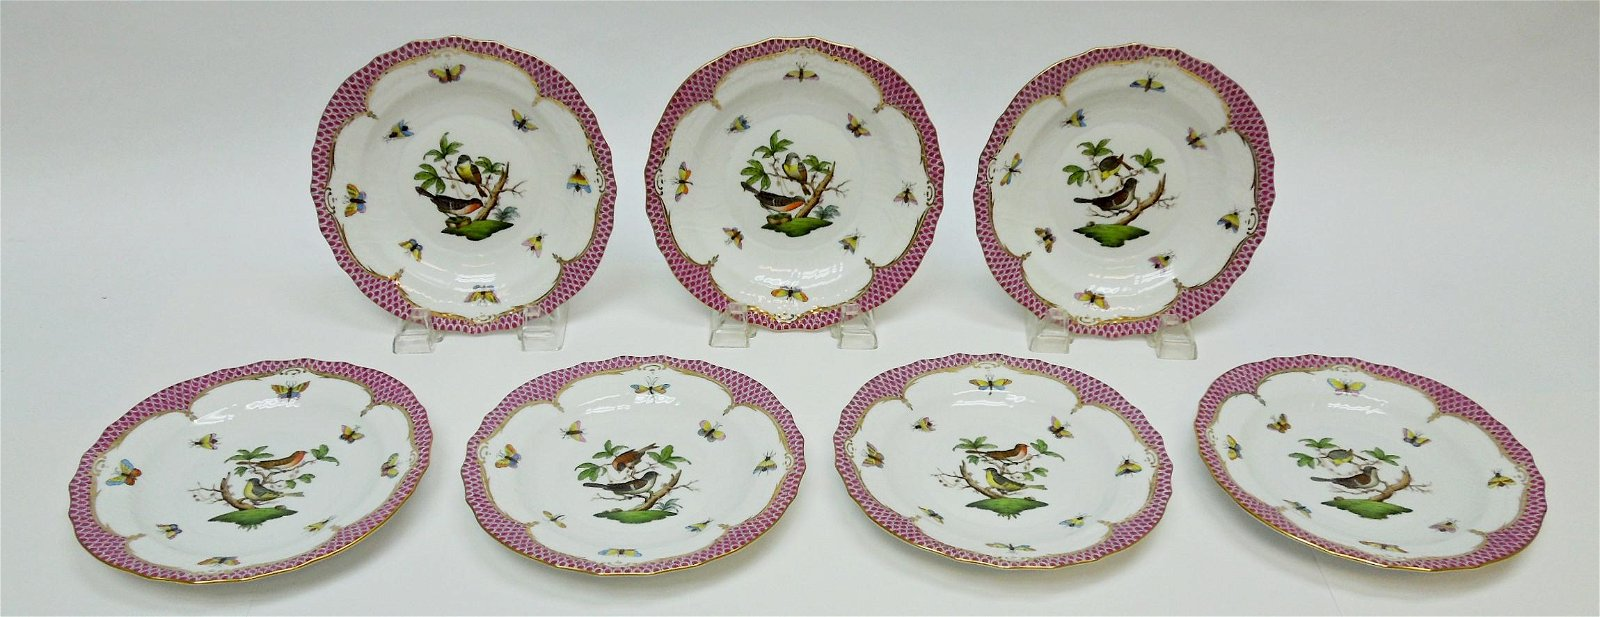 (7) Herend Rothschild Bird Pink Salad Plates.